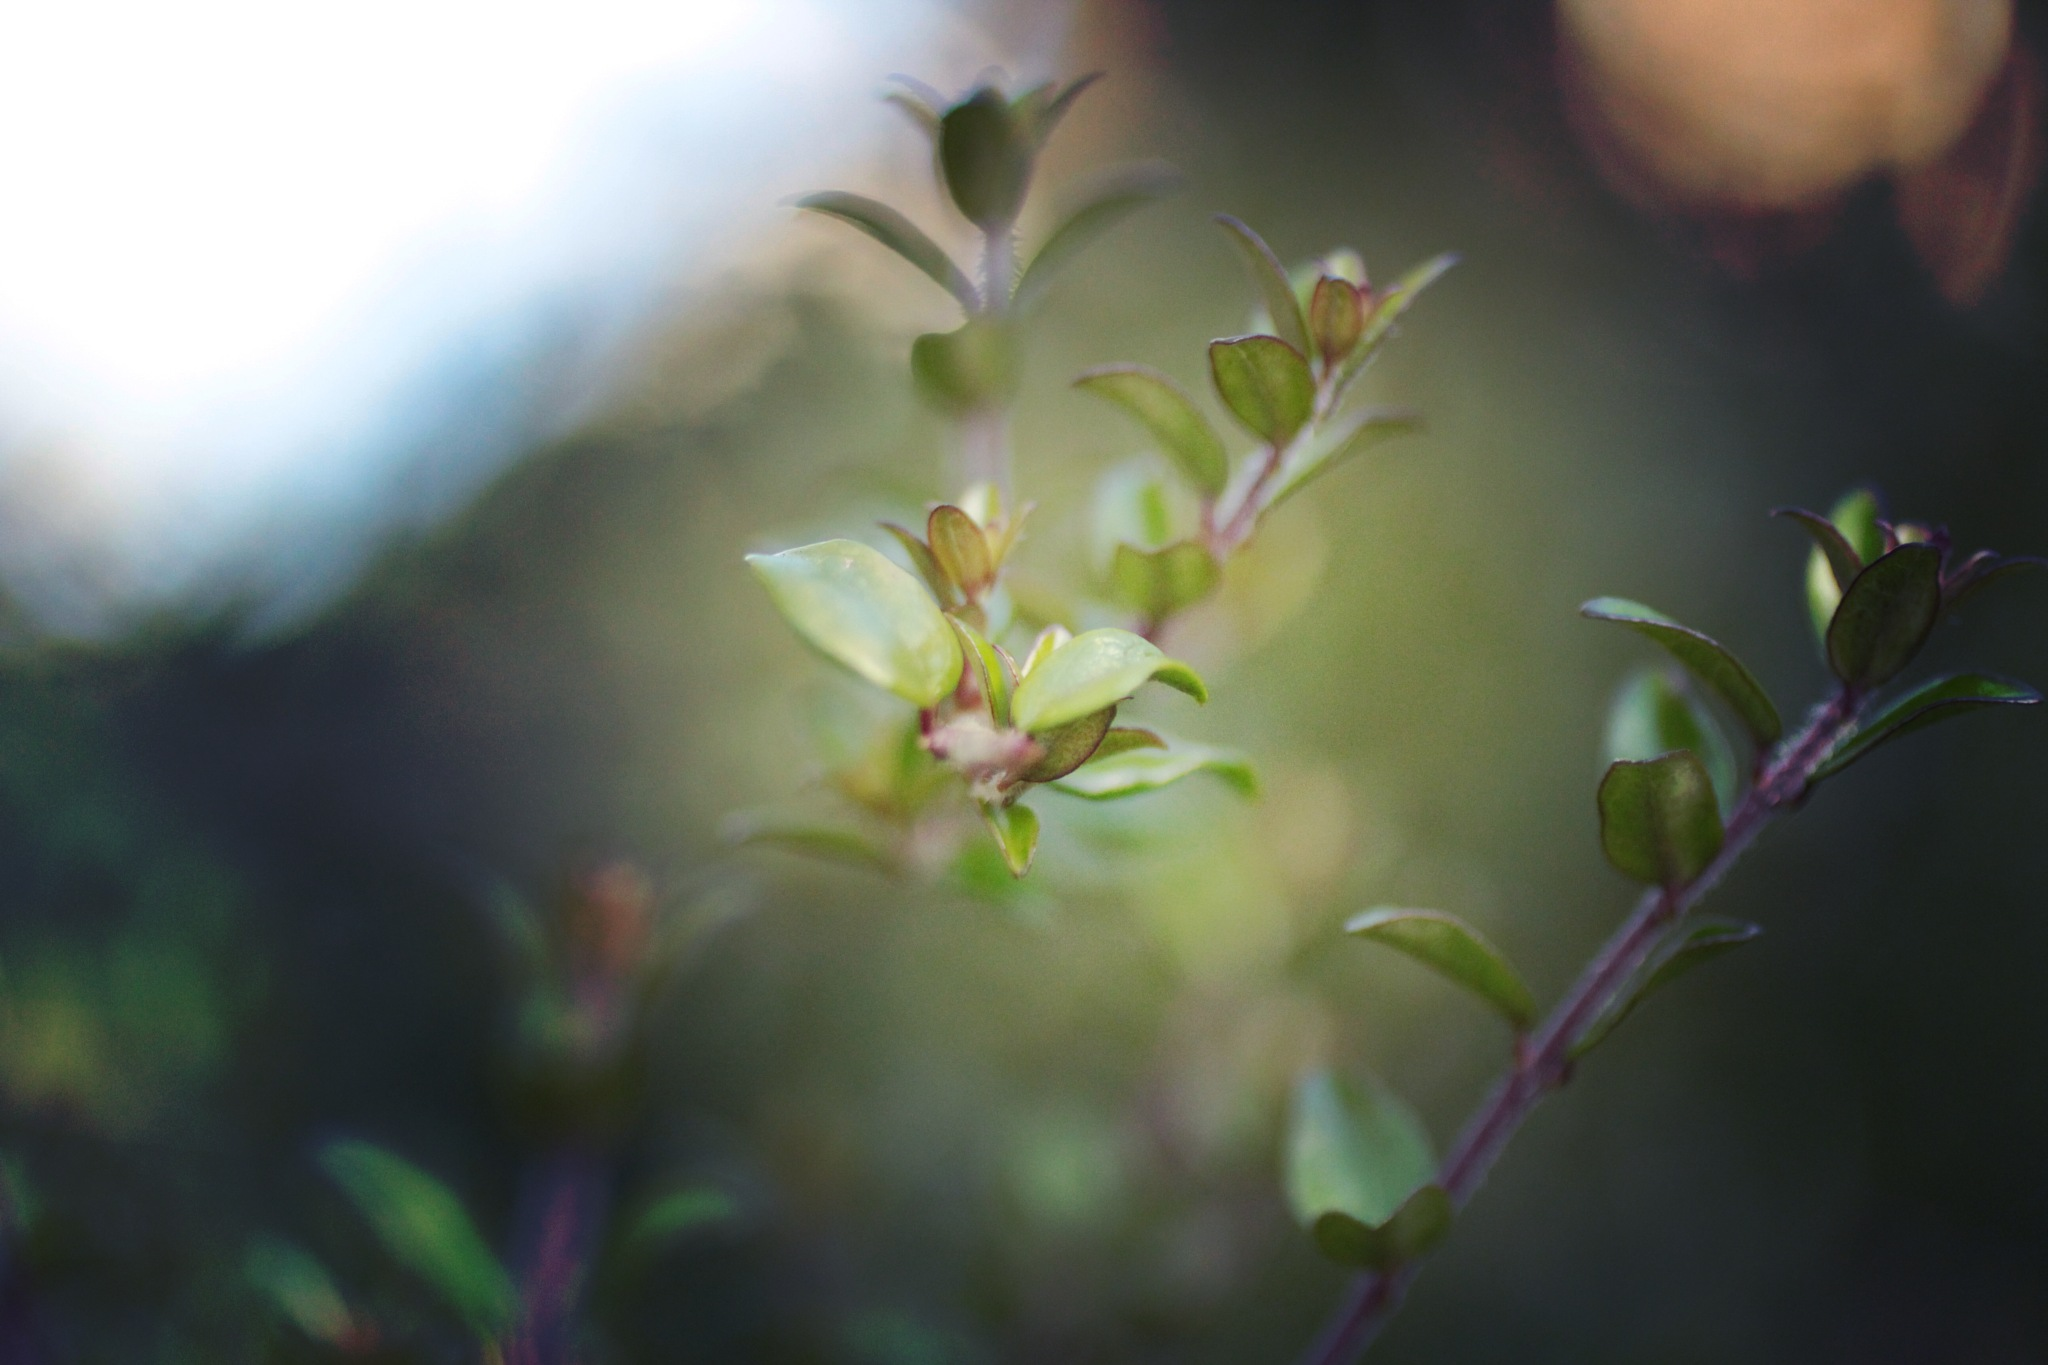 Green leaves by Lsb23